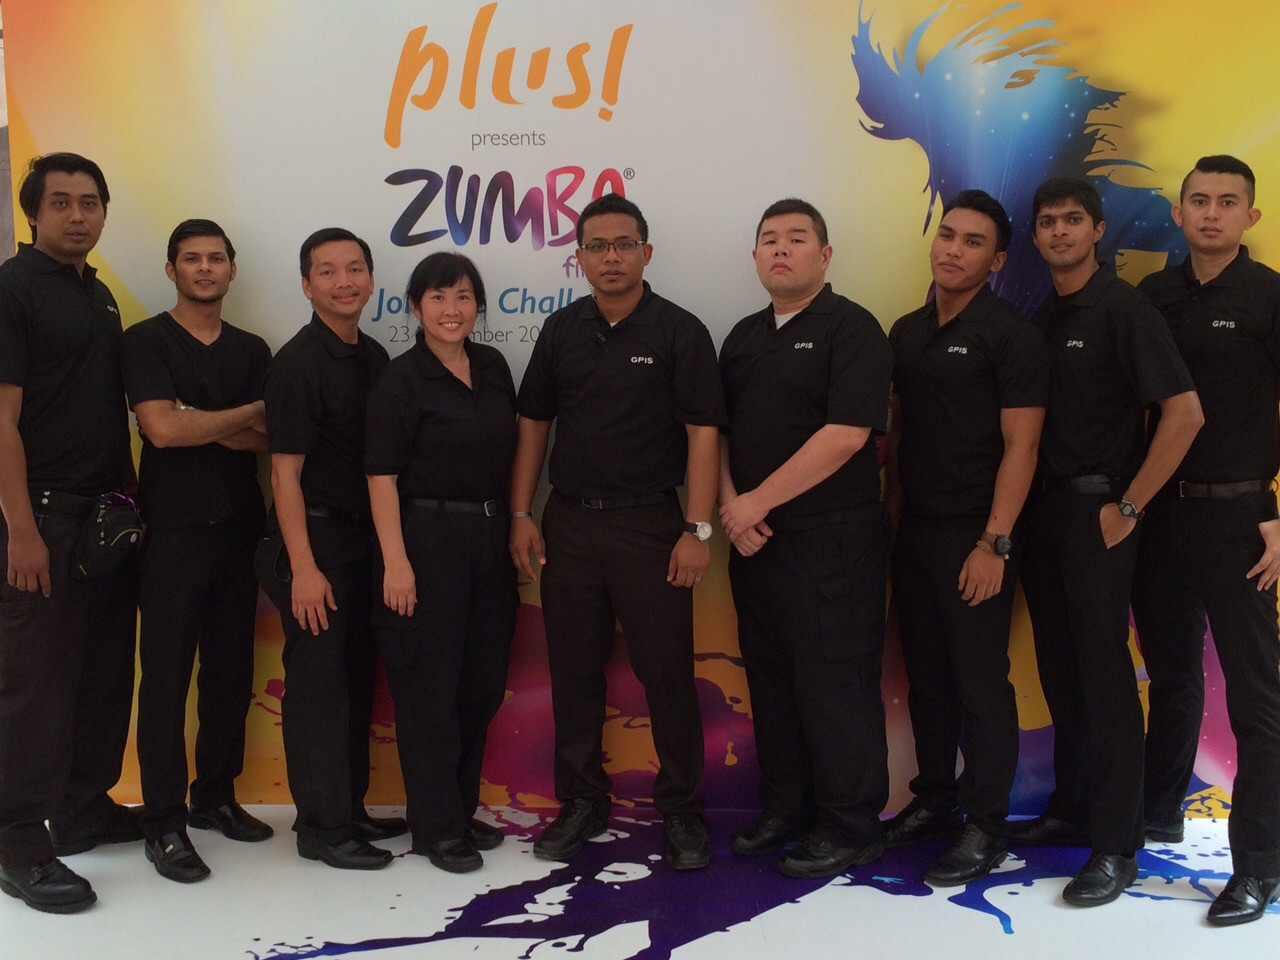 Zumba Event Protection Security Officers 7